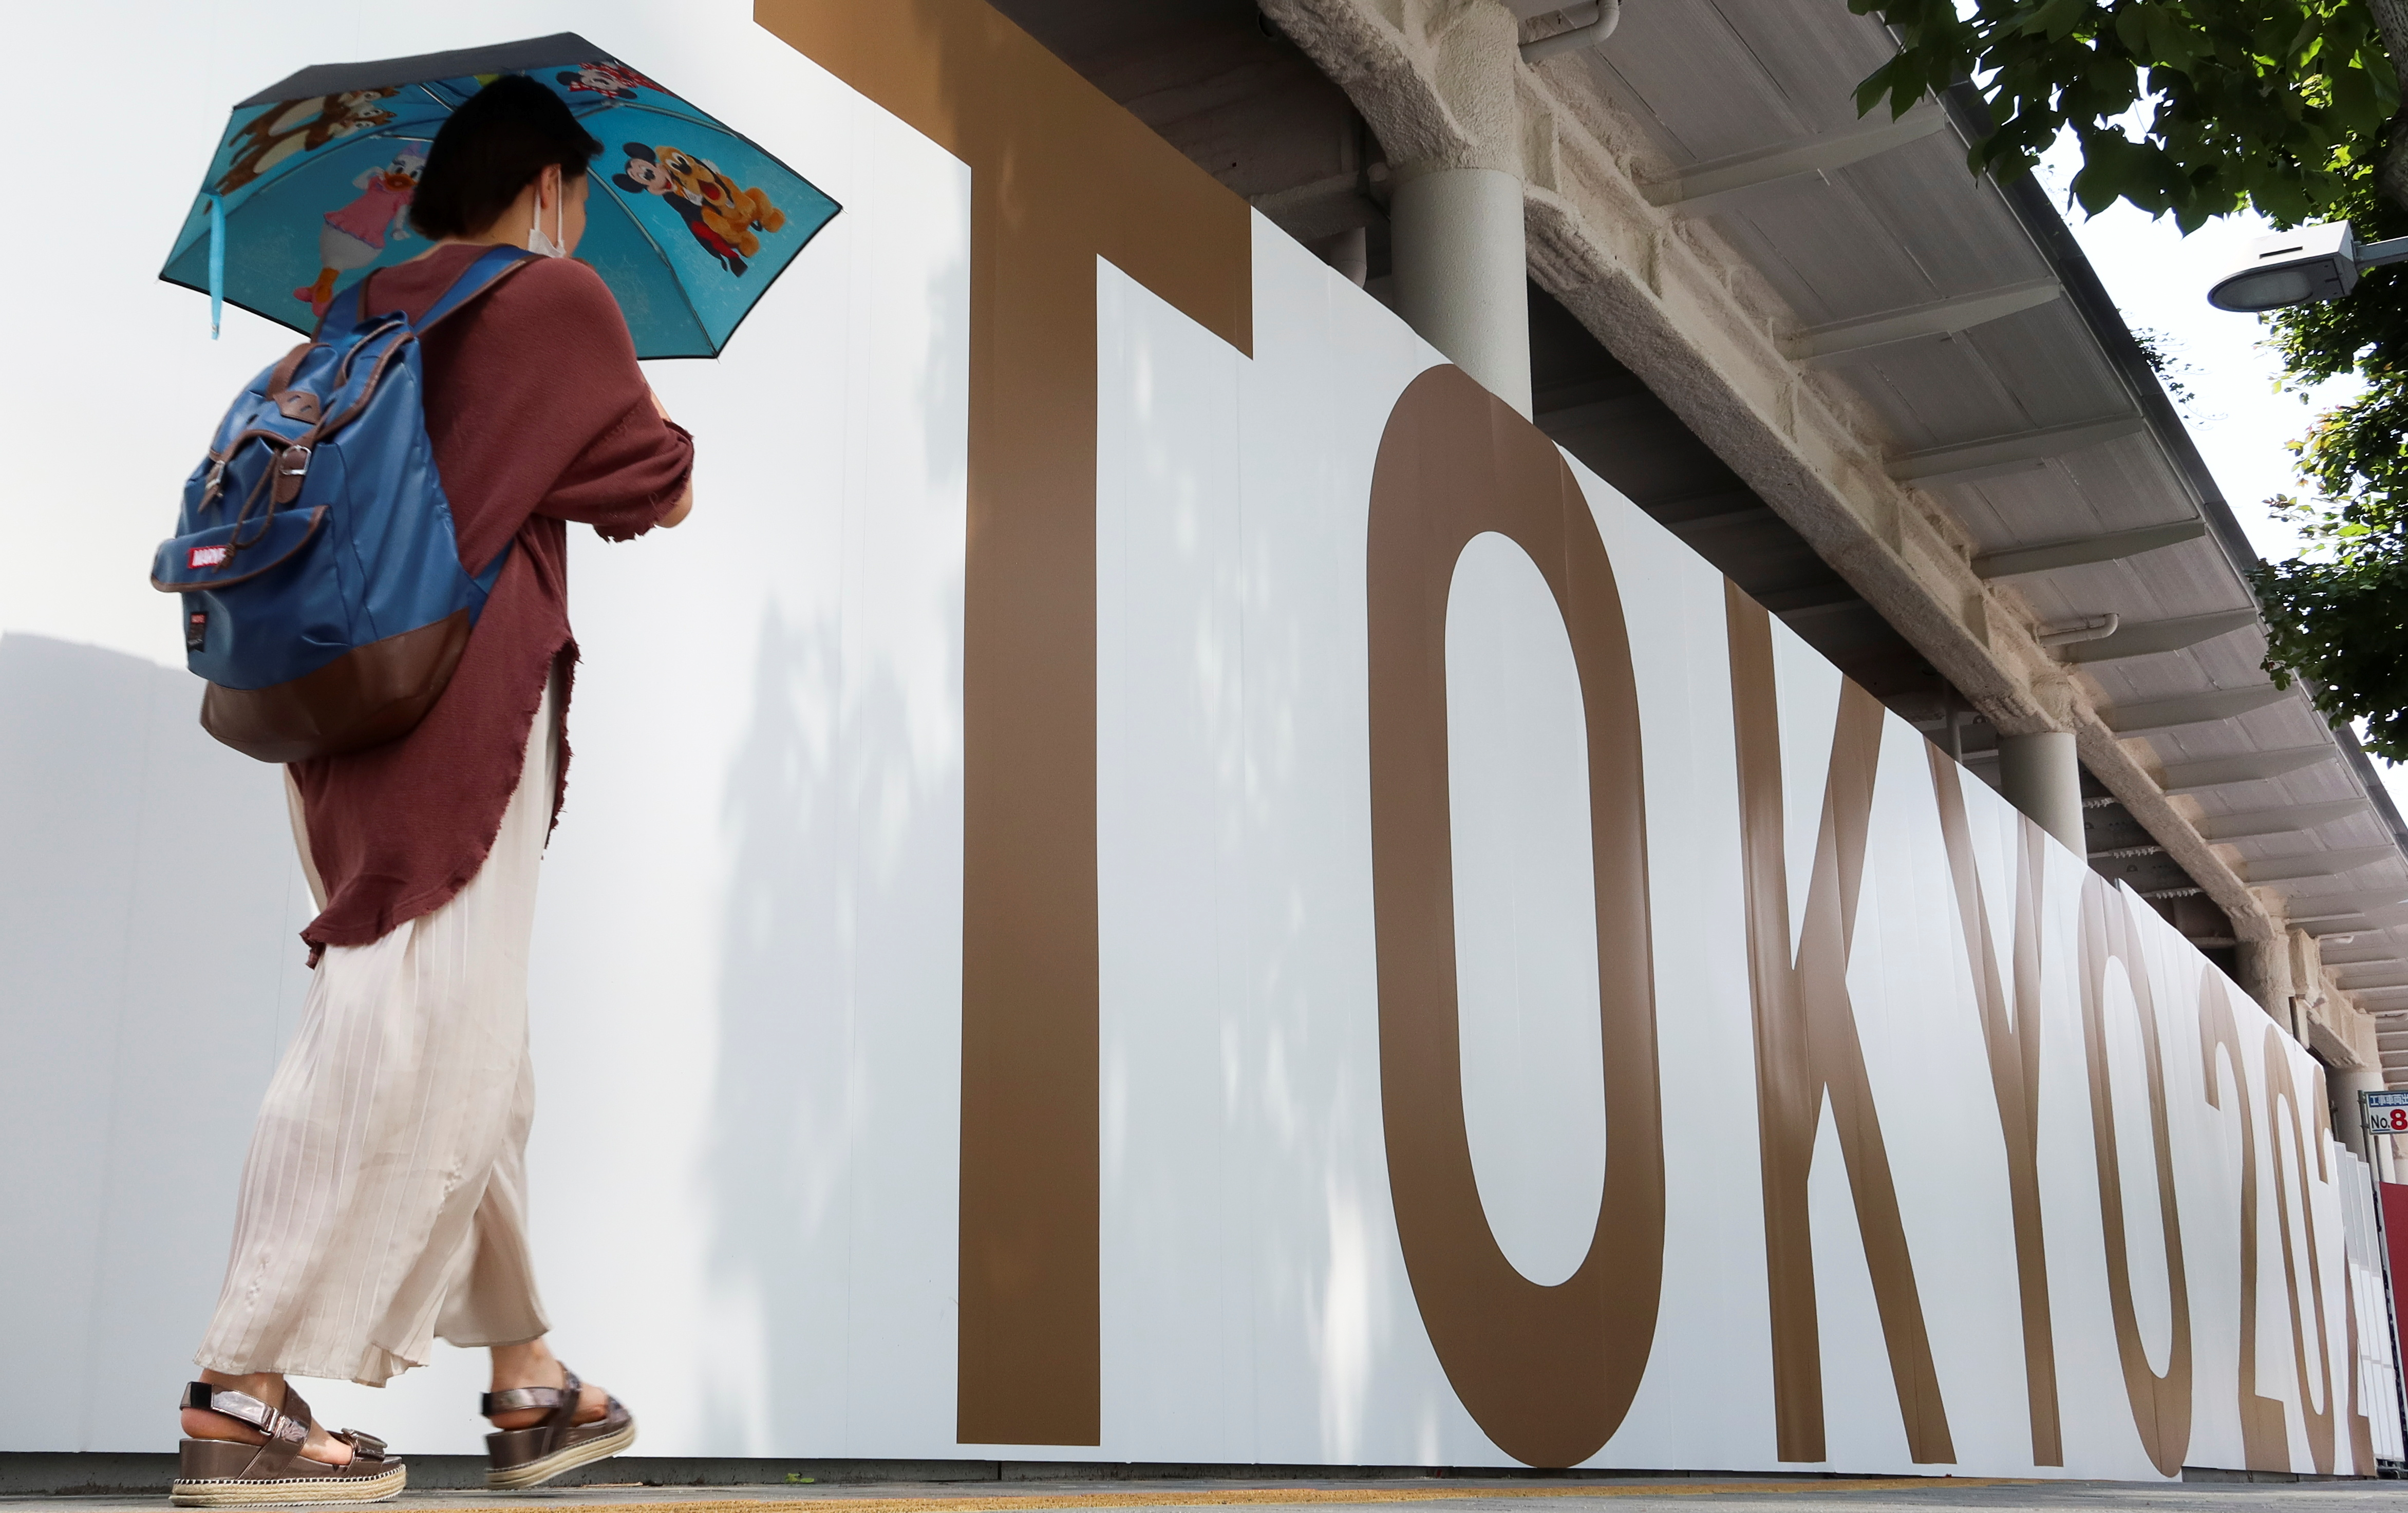 A woman walks outside the security fence of Olympic Stadium (National Stadium) built for Tokyo Olympic Games, that have been postponed to 2021 due to the coronavirus disease (COVID-19) outbreak, in Tokyo, Japan June 11, 2021. REUTERS/Pawel Kopczynski